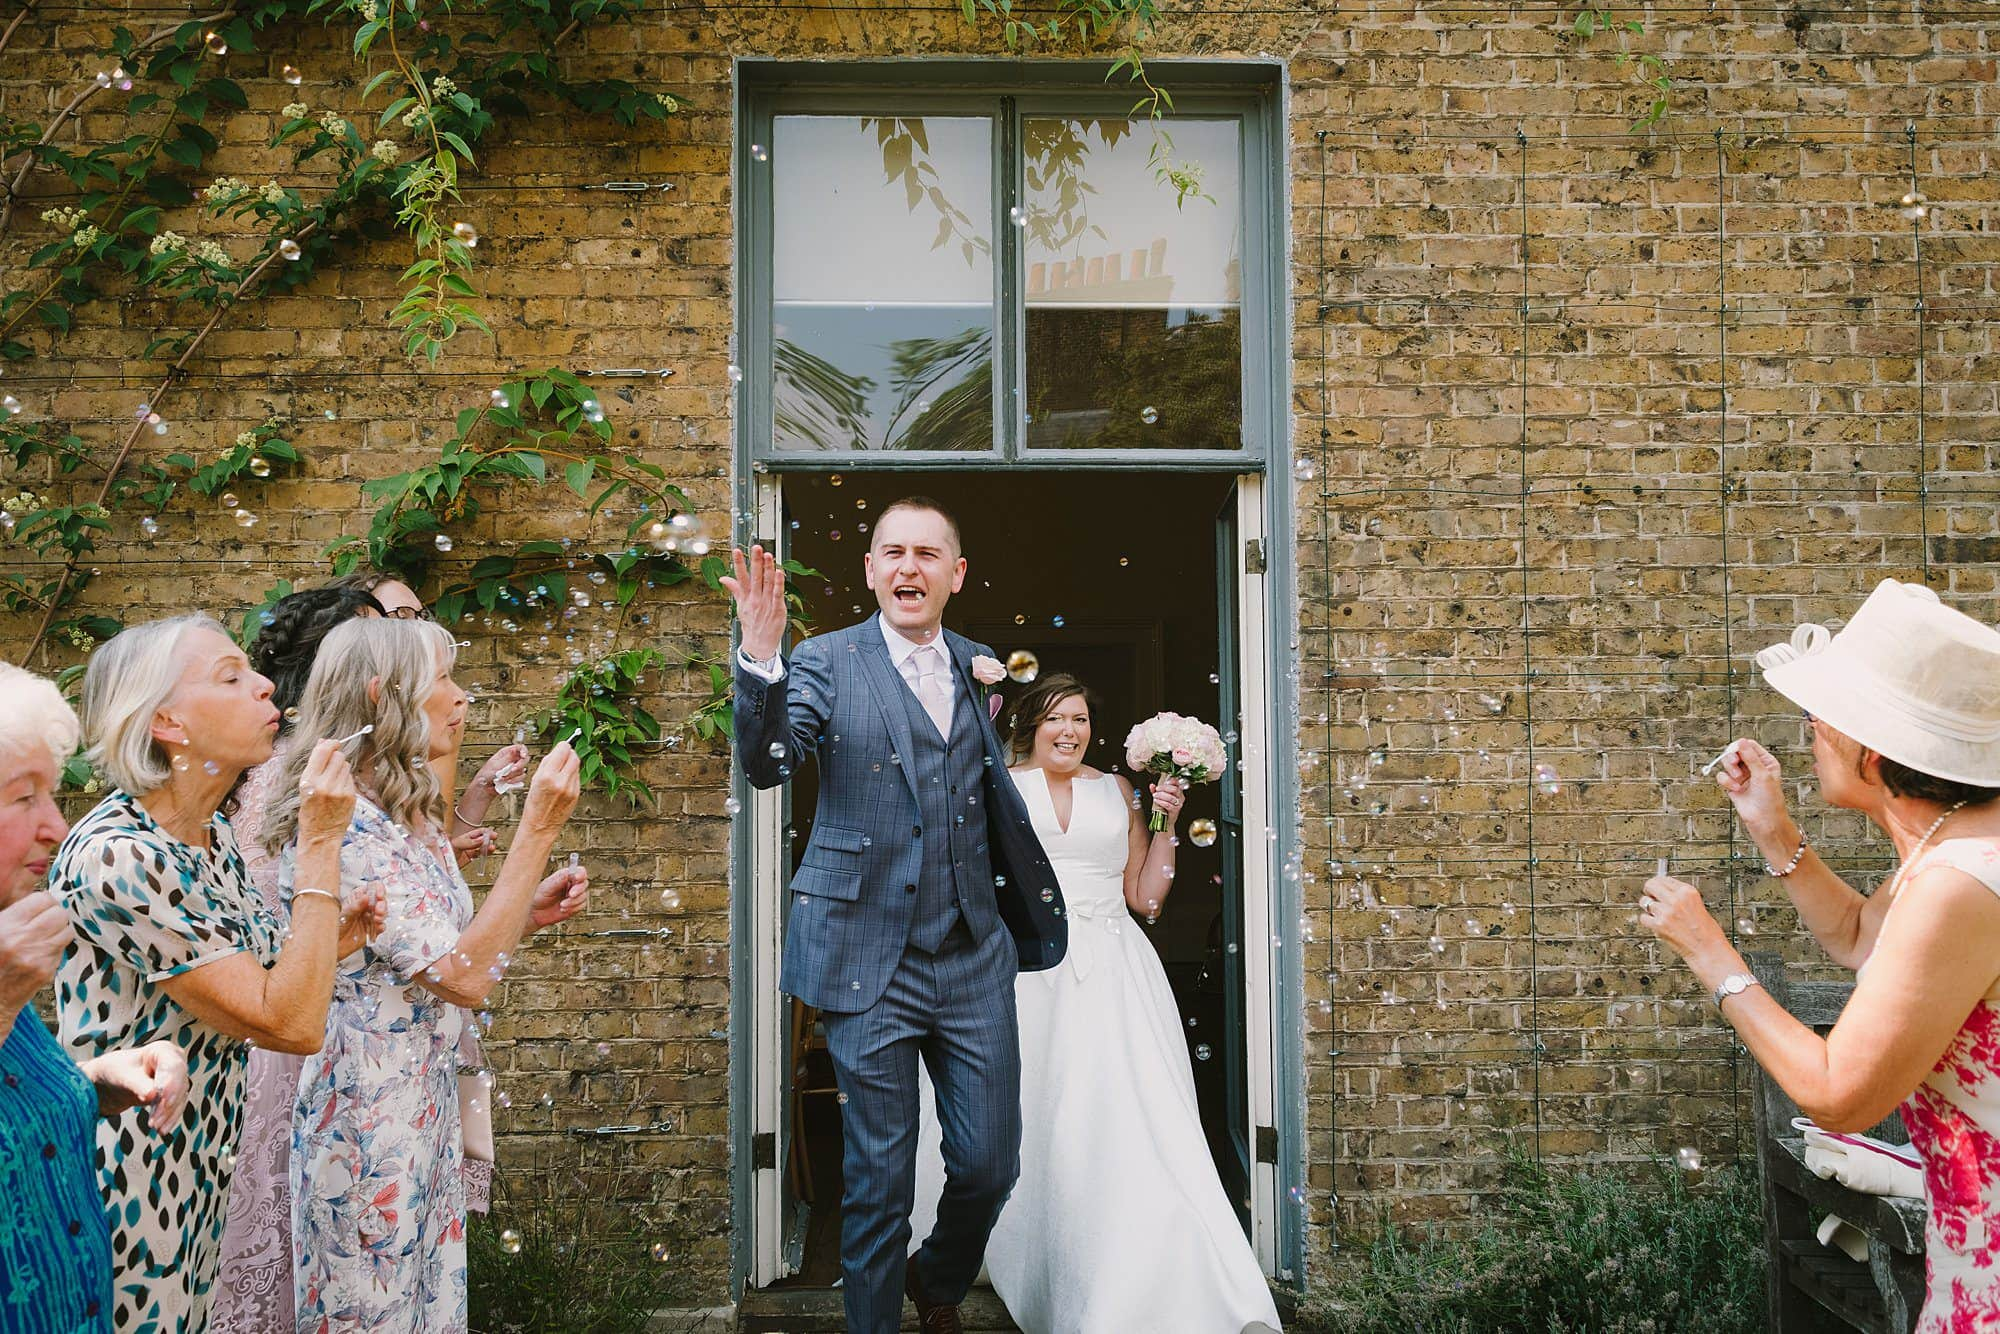 bubbles after a wedding ceremony at cambridge cottage in kew gardens